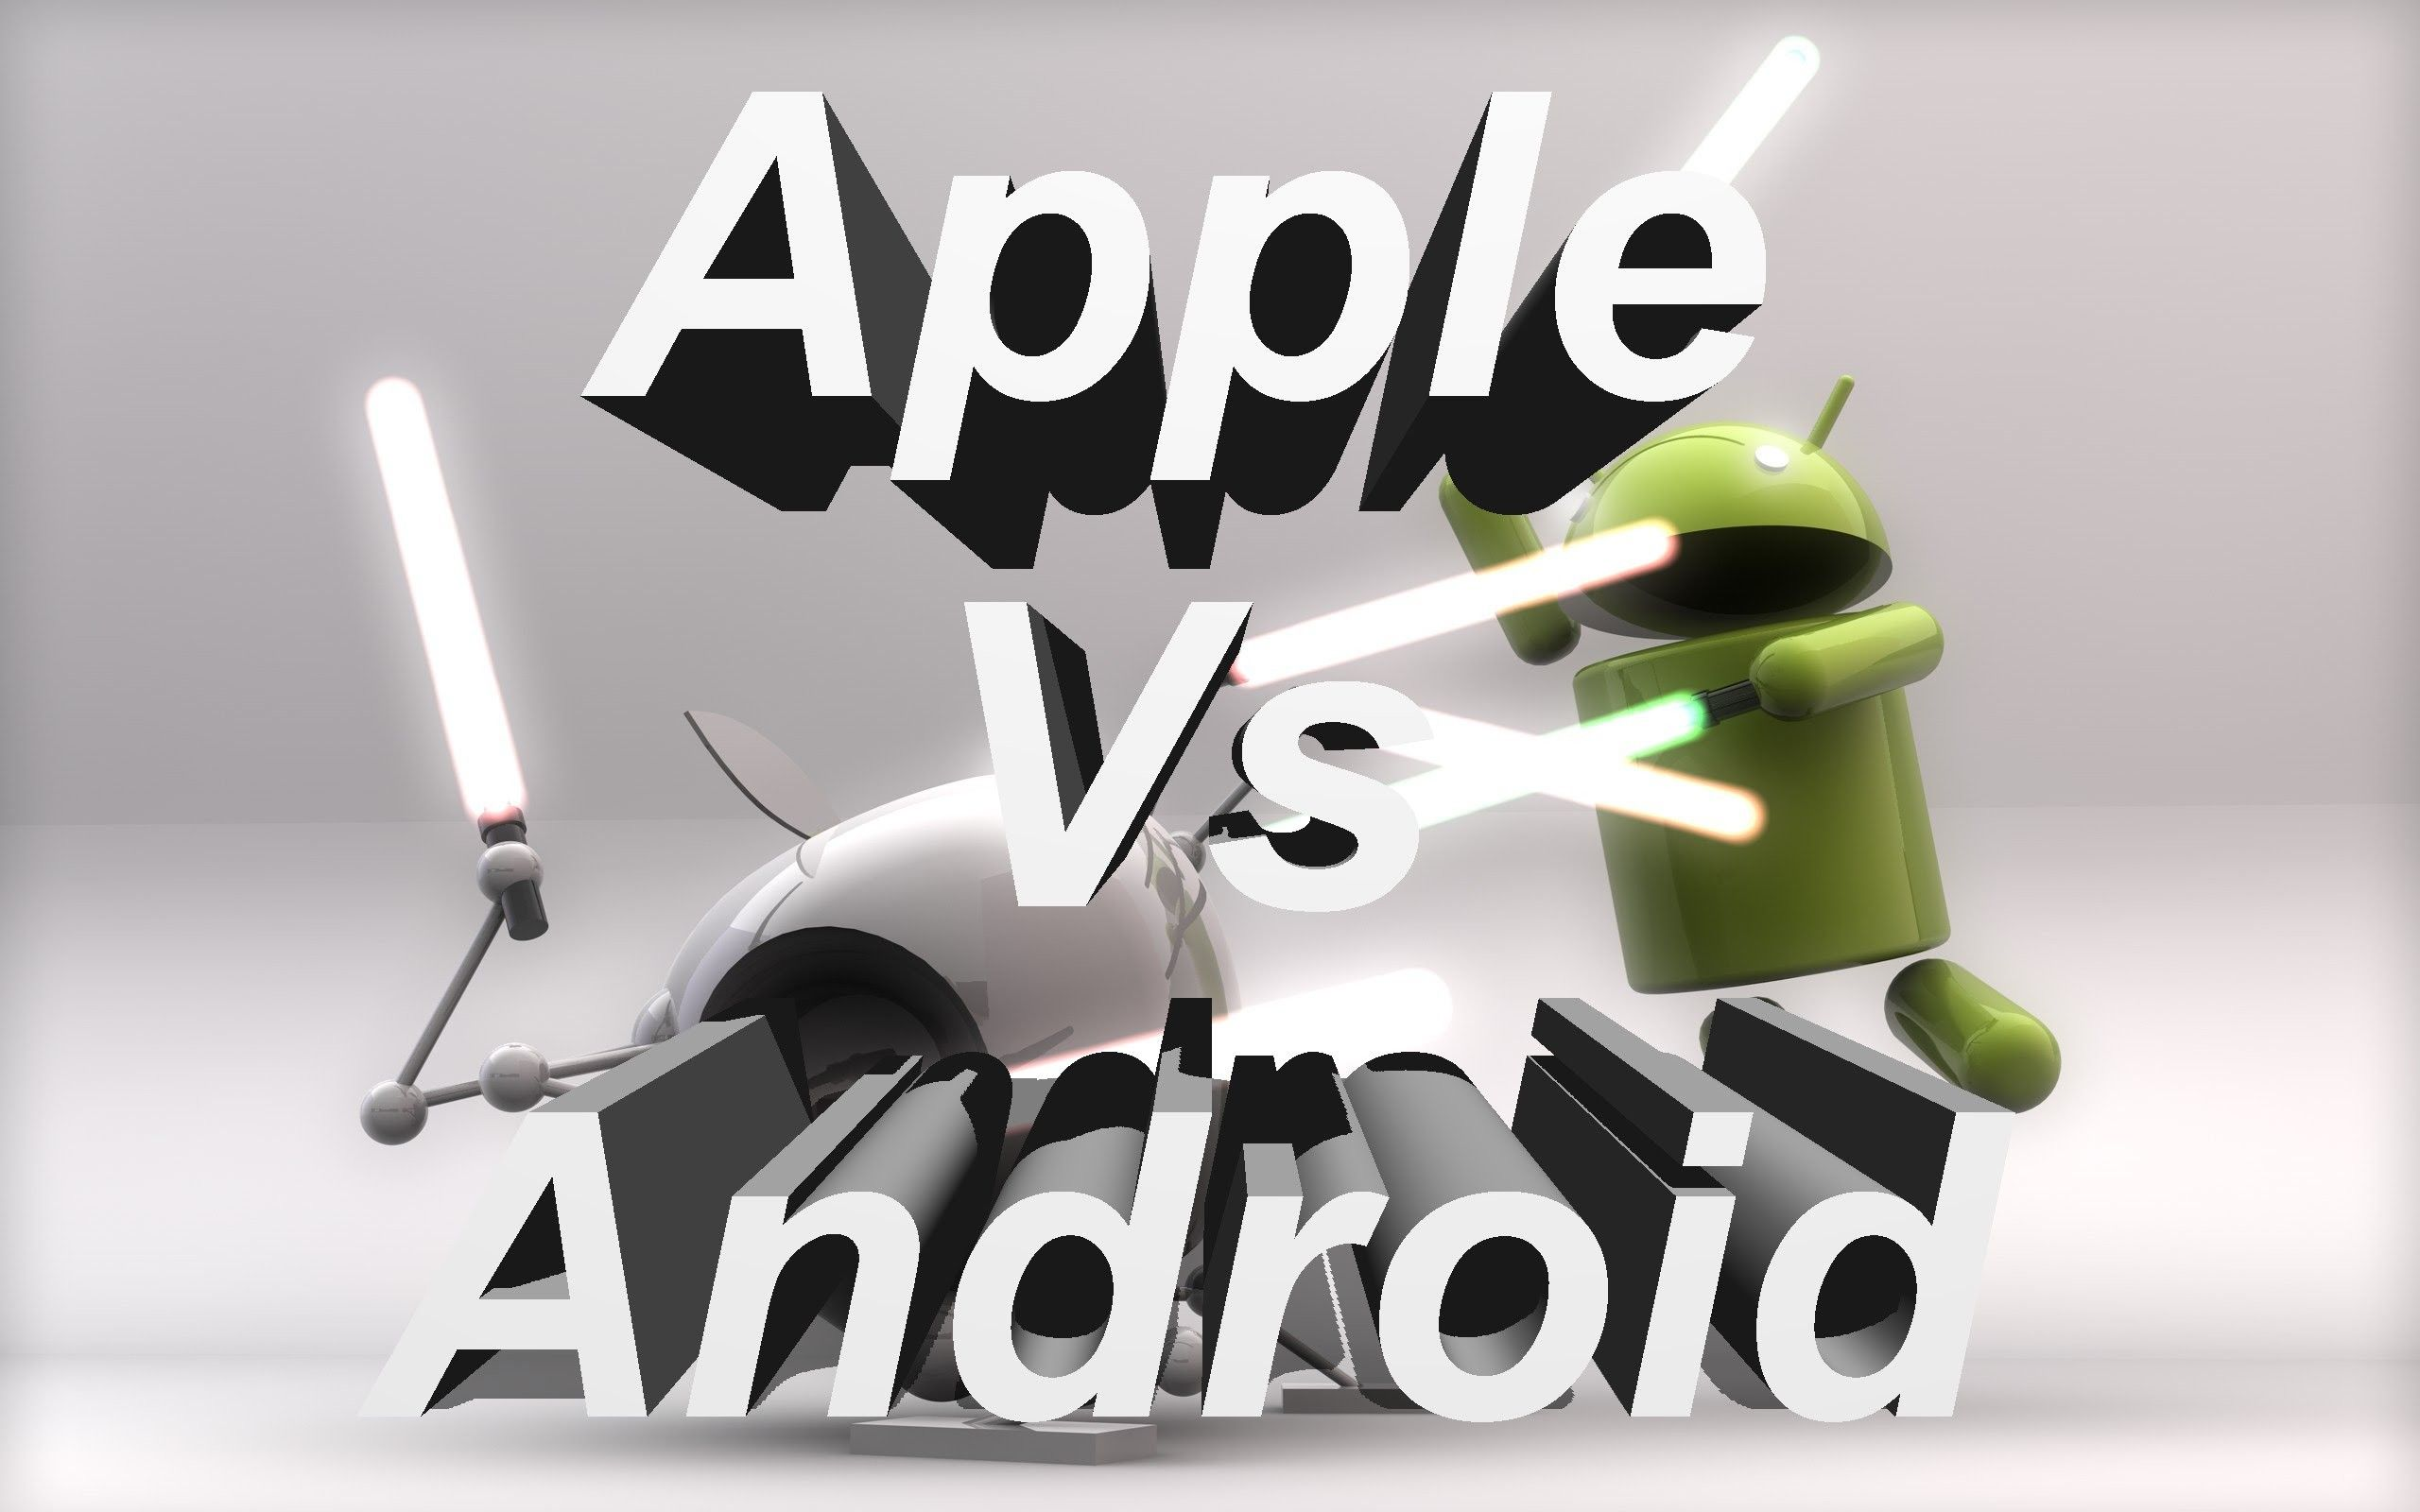 3d Wallpaper Of Android Vs Apple Android Vs Apple 470133